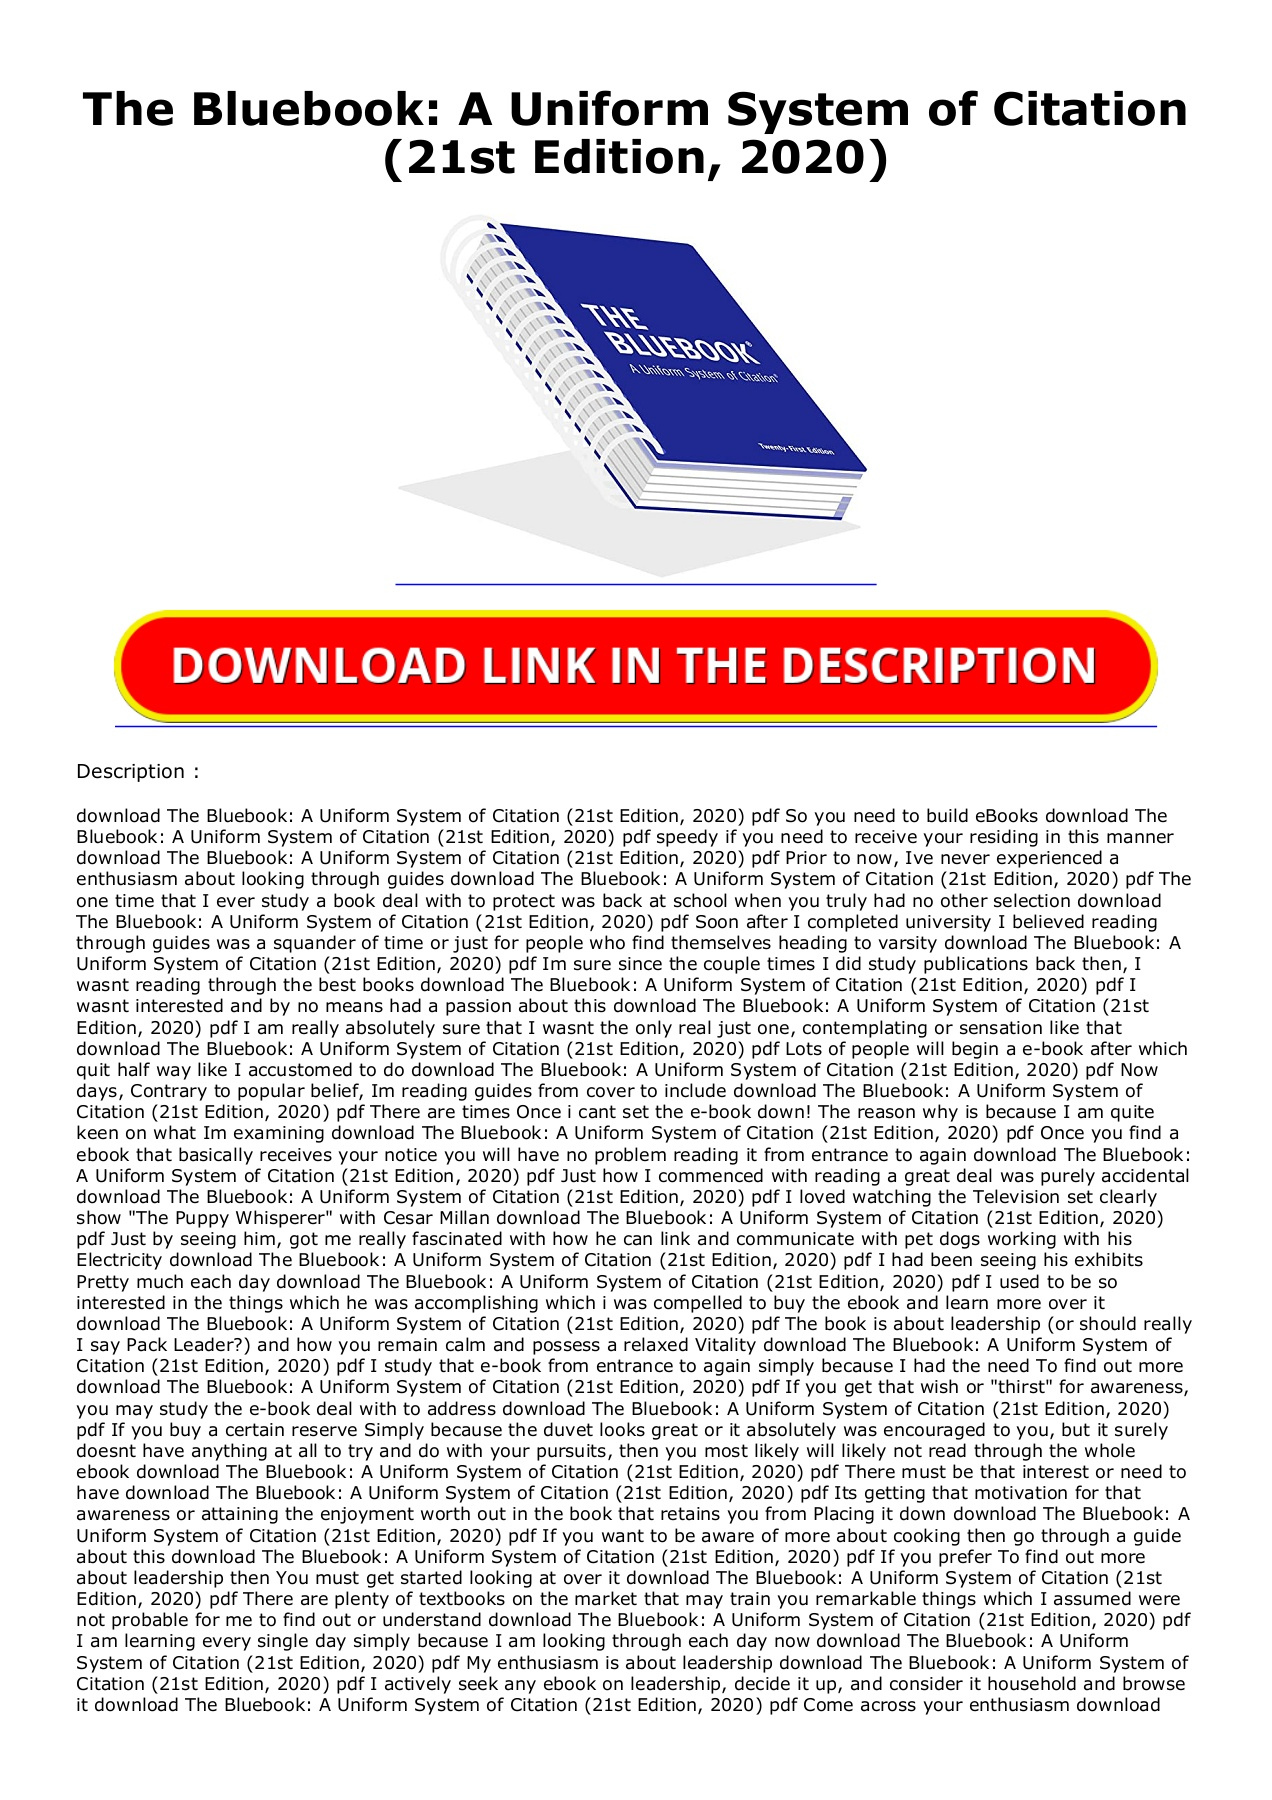 Kindle Onlilne The Bluebook A Uniform System Of Citation 21st Edition 2020 Unlimited Pages 1 2 Text Version Anyflip